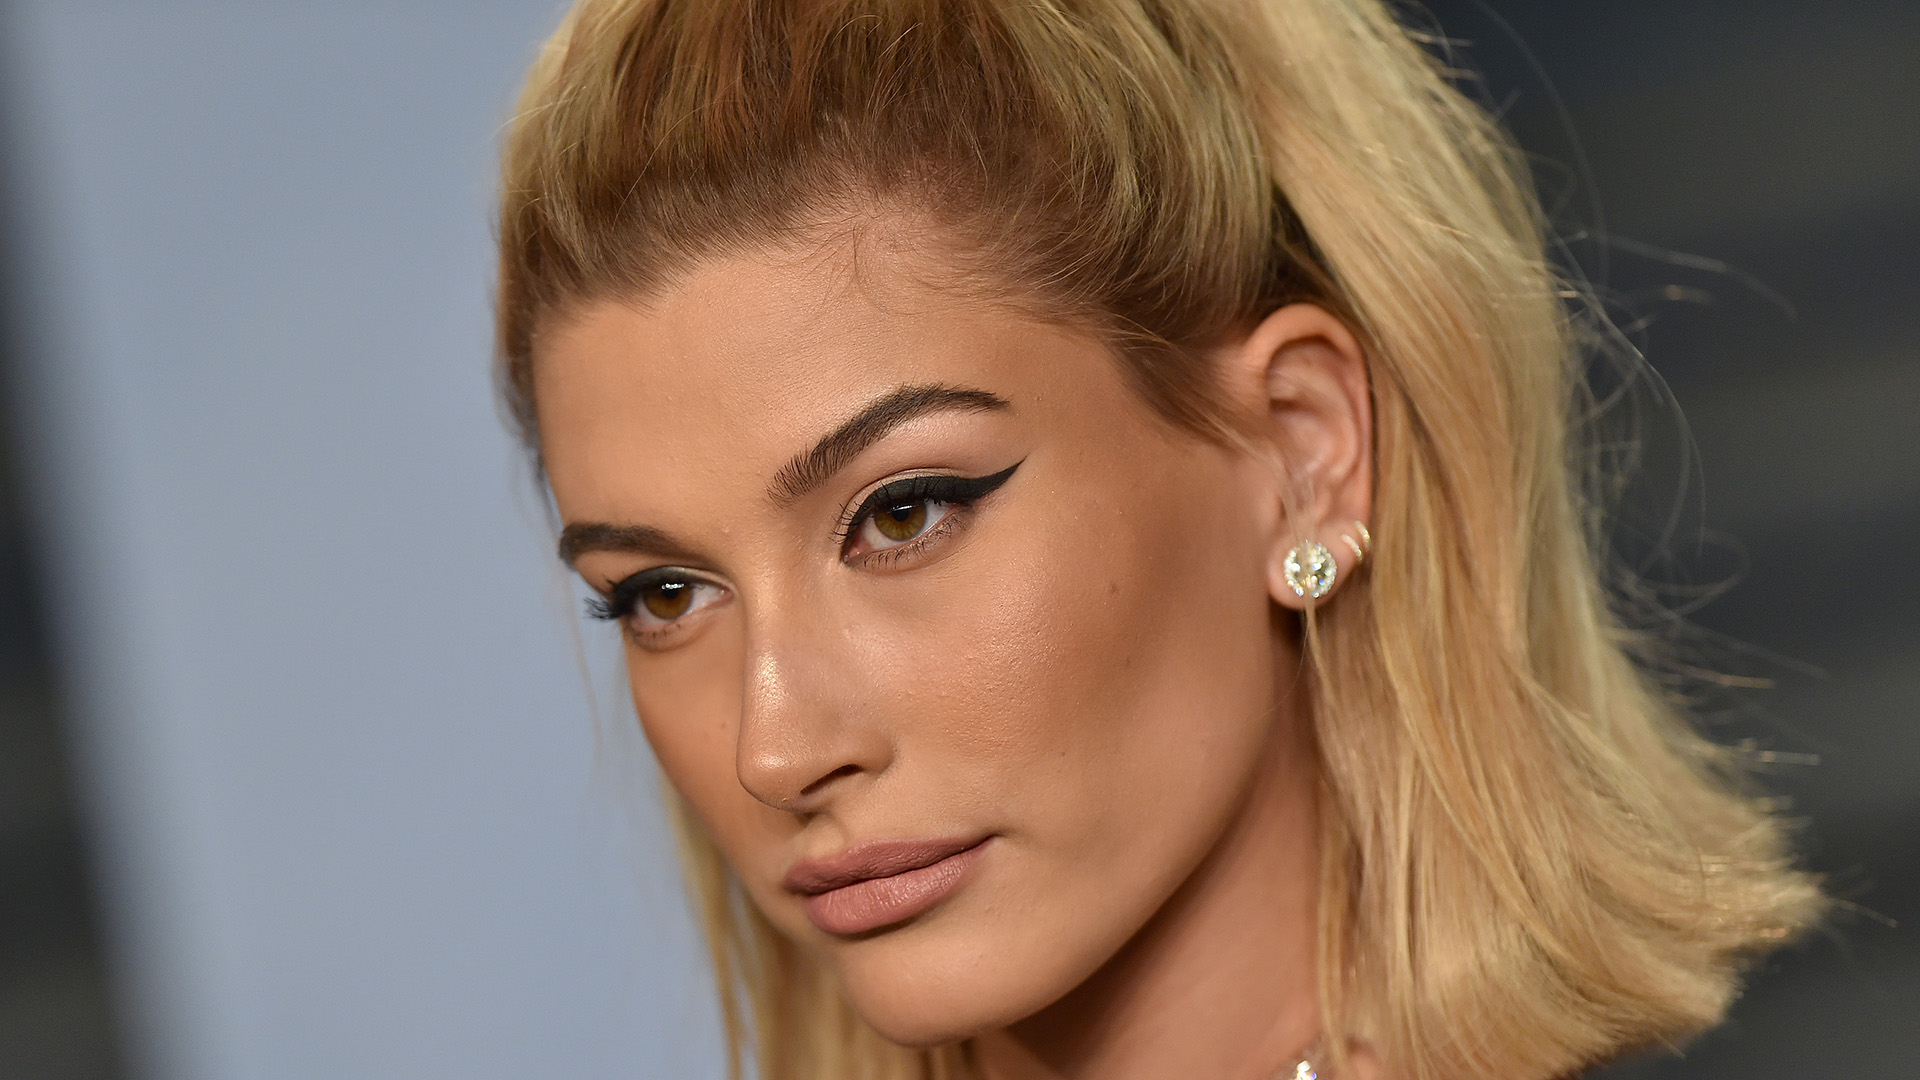 How Hailey Baldwin S Makeup Artist Uses Eyedrops Stylecaster